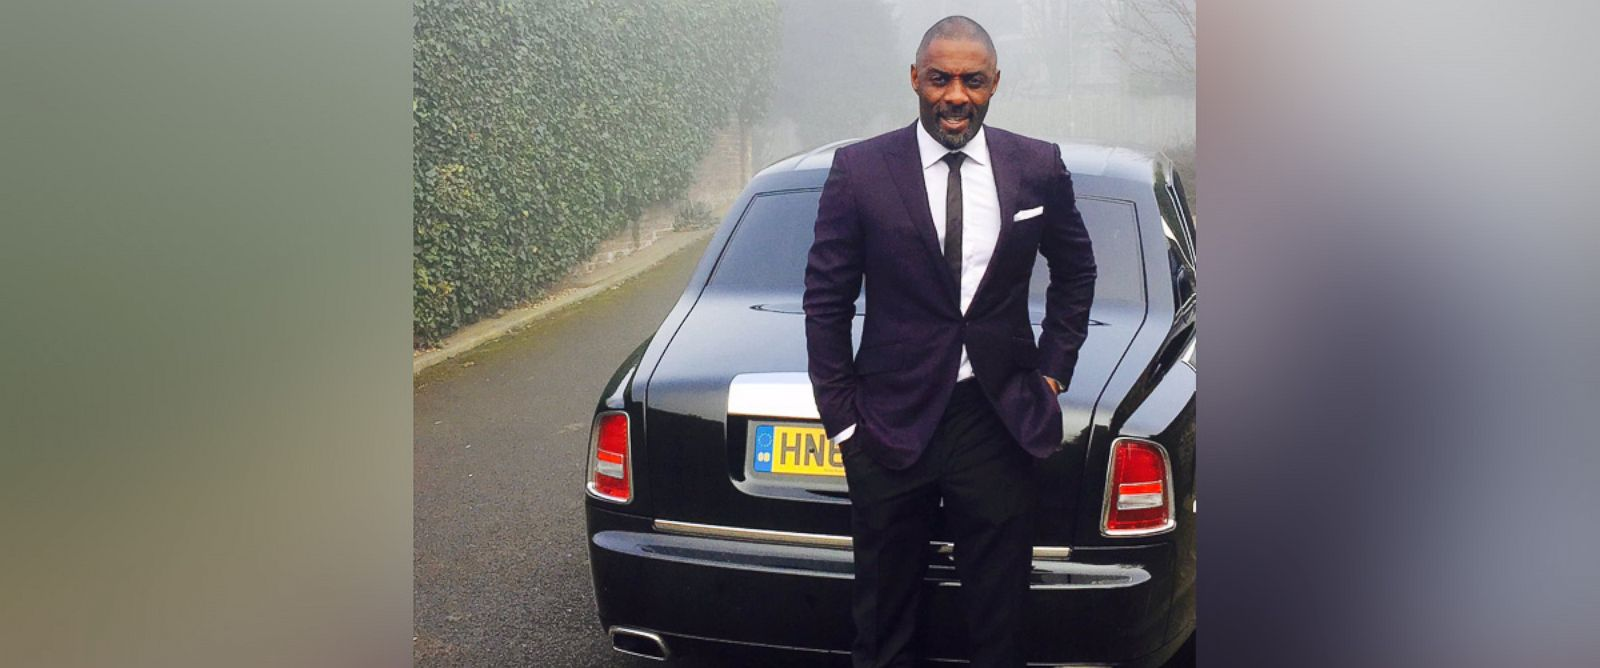 PHOTO: A photo posted to Idris Elbas Twitter account, March 11, 2016. Idris Elba is set to receive the Officer of the Most Excellent Order of the British Empire (OBE) honor at Buckingham Palace.